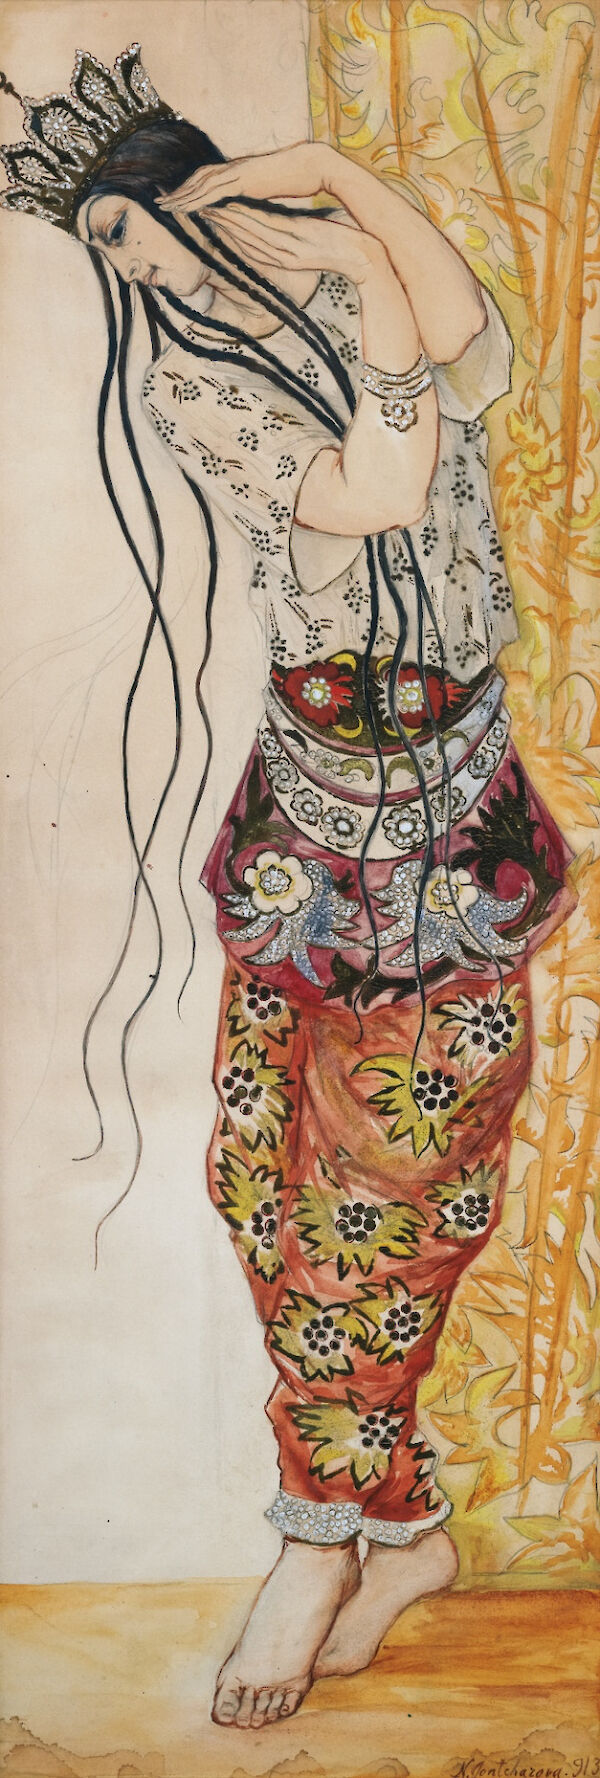 Queen Of Shamakhan from 'Le Coq d'Or'